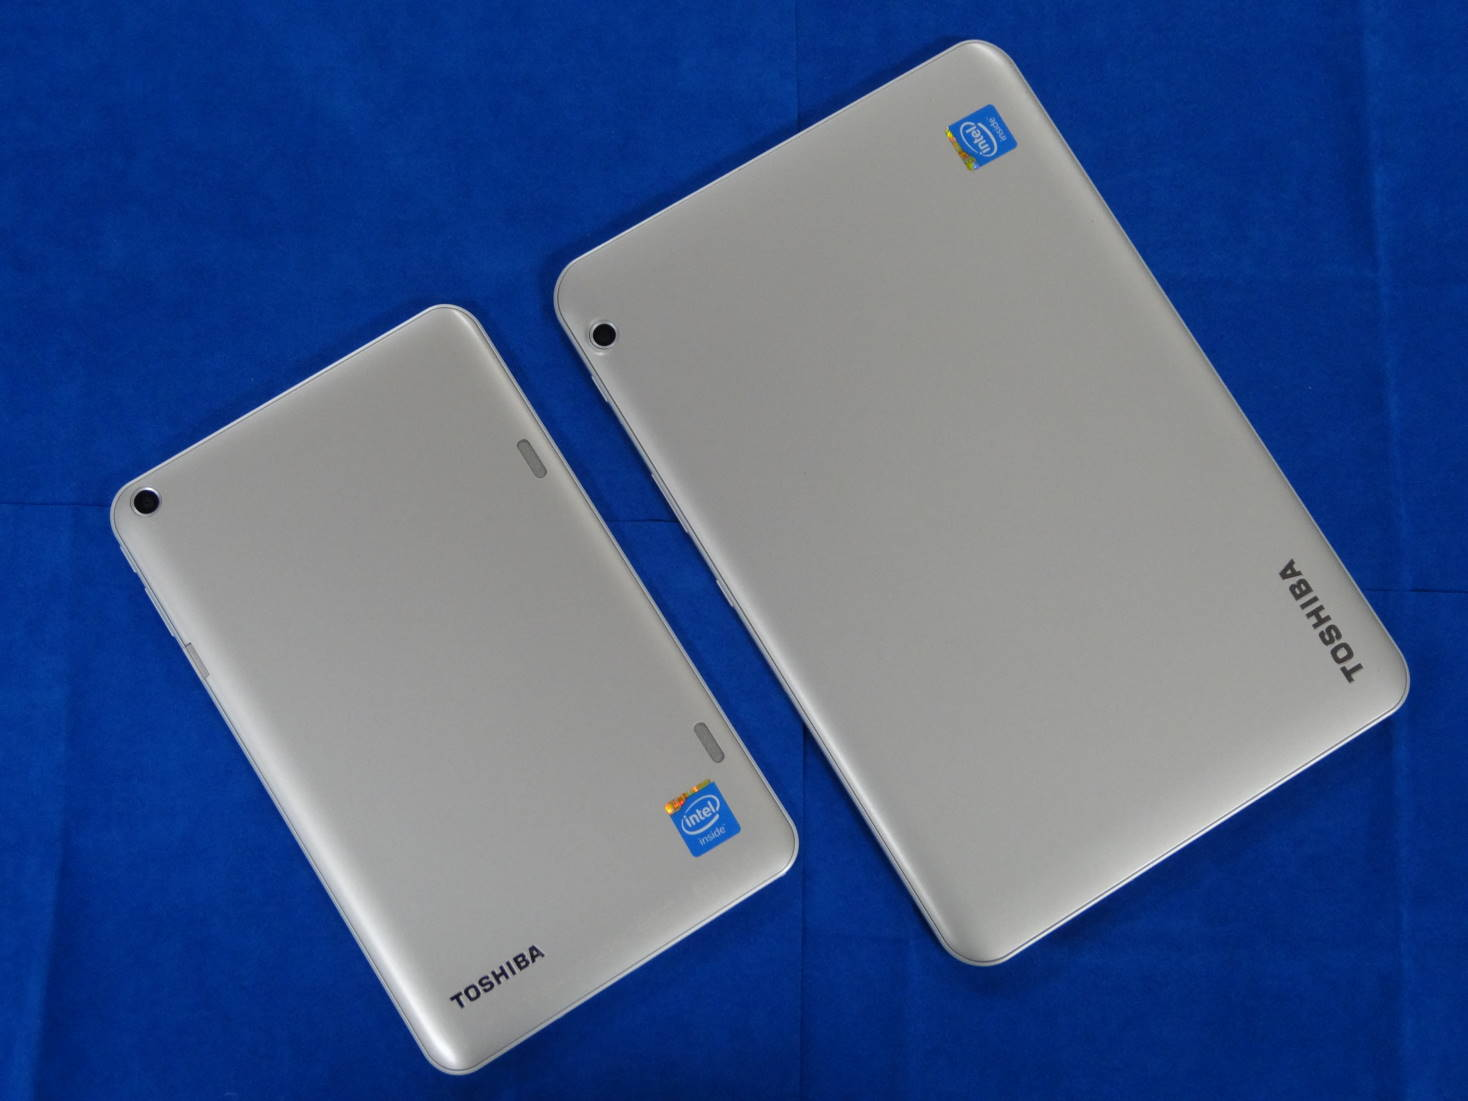 dynabook Tab S68とdynabook Tab S80の裏面